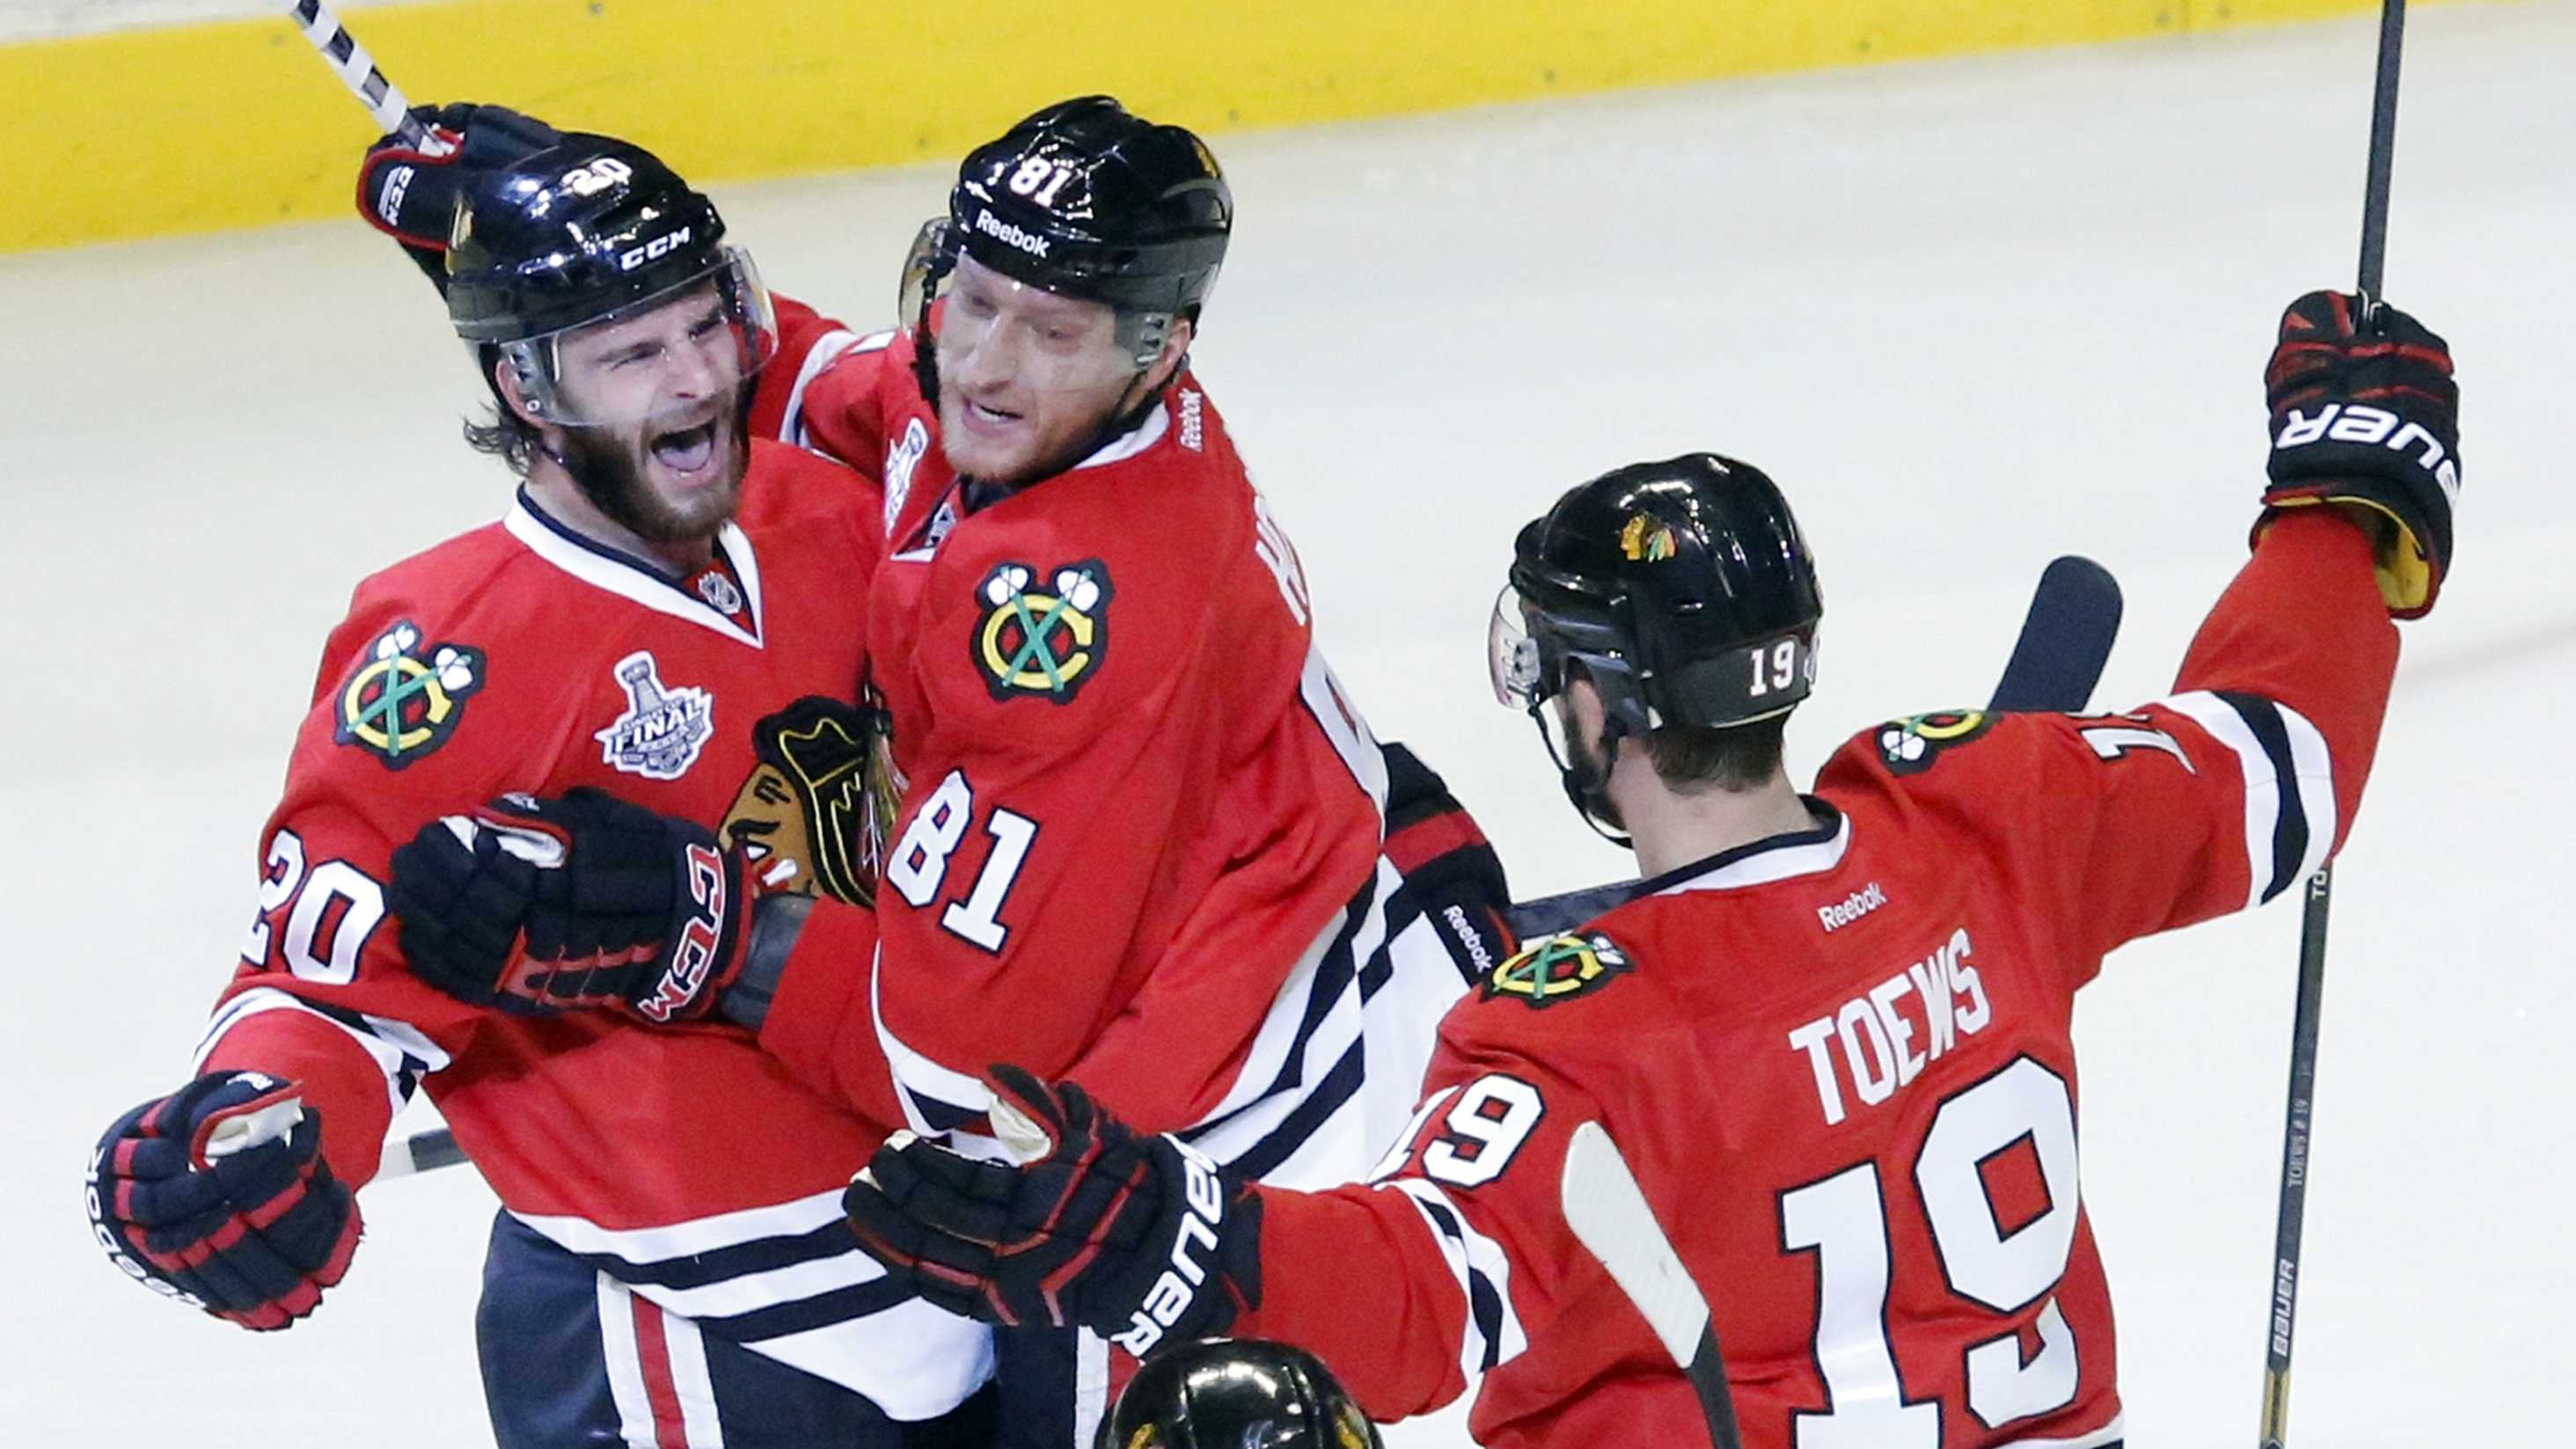 Chicago Blackhawks left wing Brandon Saad (20) celebrates with right wing Marian Hossa (81) and center Jonathan Toews (19) after scoring a goal during the second period of Game 1 in their NHL Stanley Cup Final hockey series against the Boston Bruins, Wednesday, June 12, 2013, in Chicago.